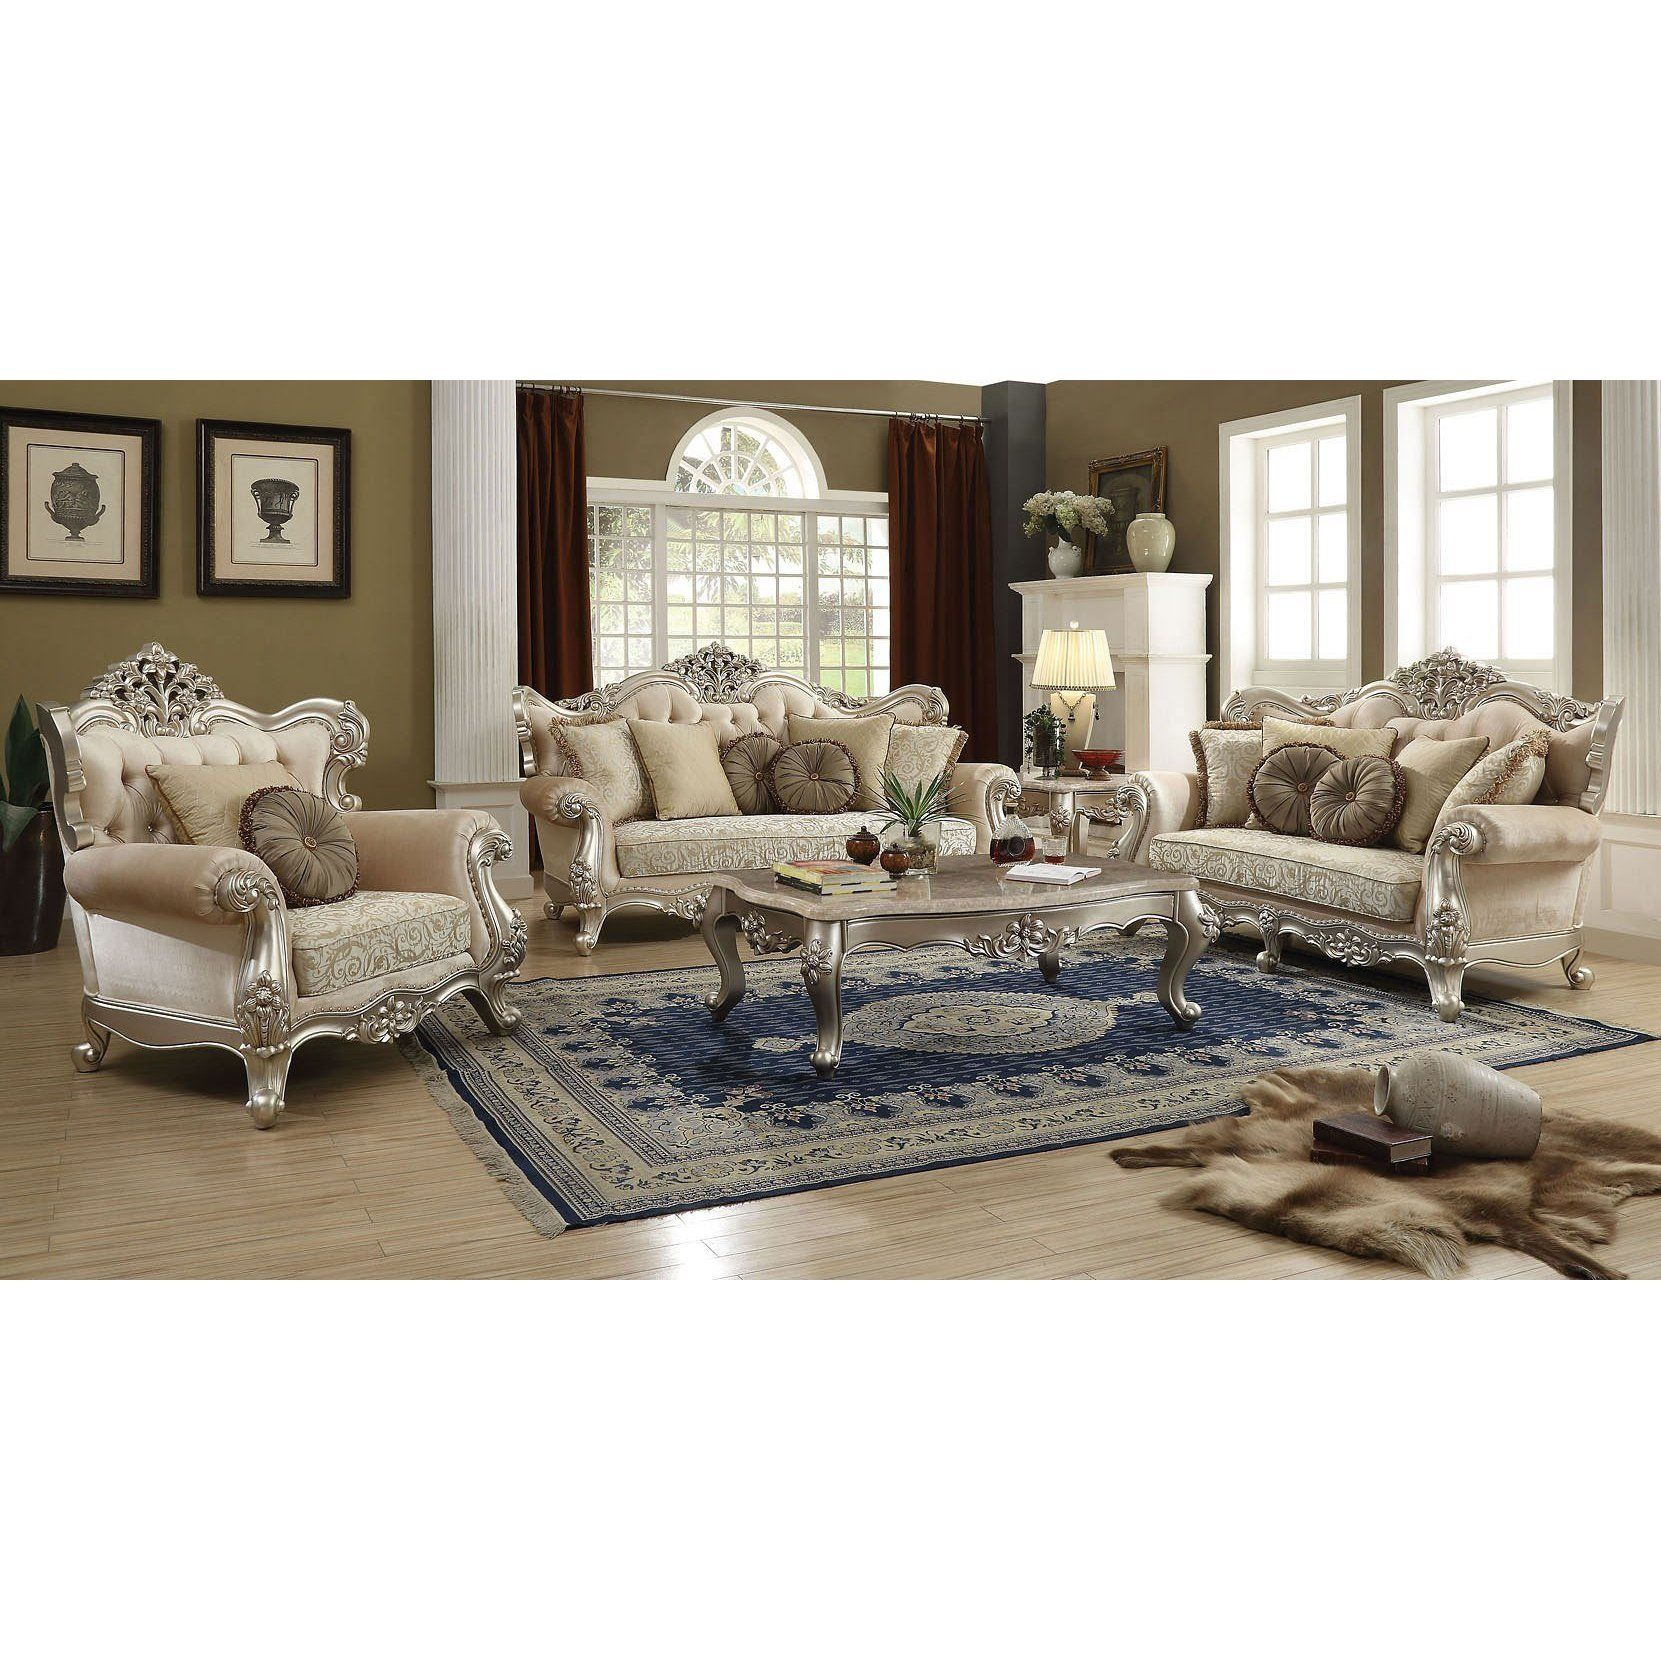 Best Acme Bently In Fabric Finish 5 Pc Living Room Set Marble 400 x 300